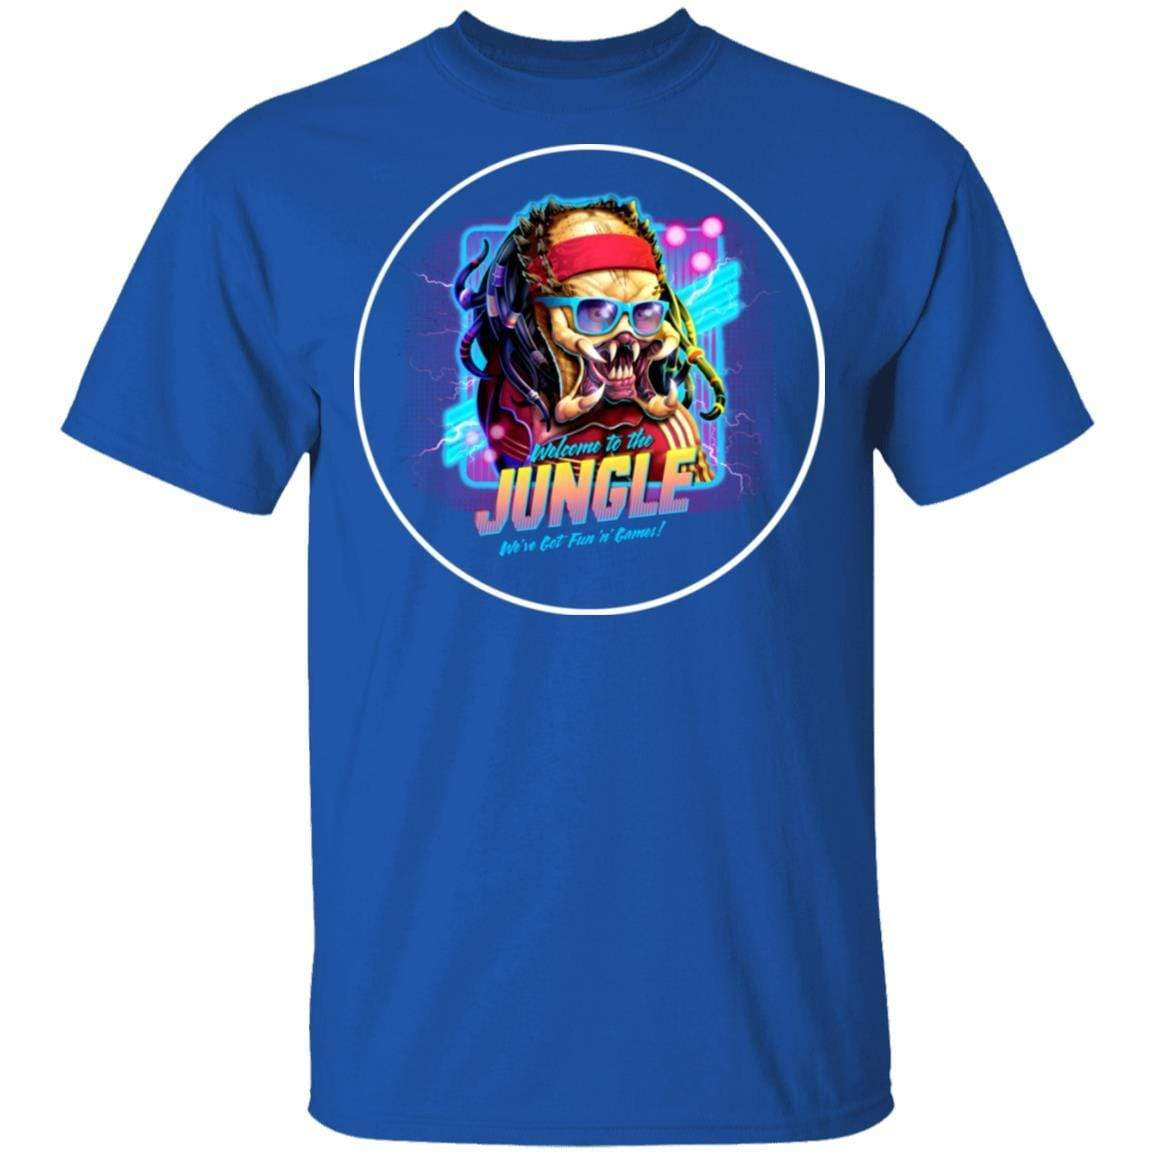 Welcome To The Jungle We've Got Fun'n' Games T-Shirts, Hoodies 1049-9971-89706443-48286 - Tee Ript